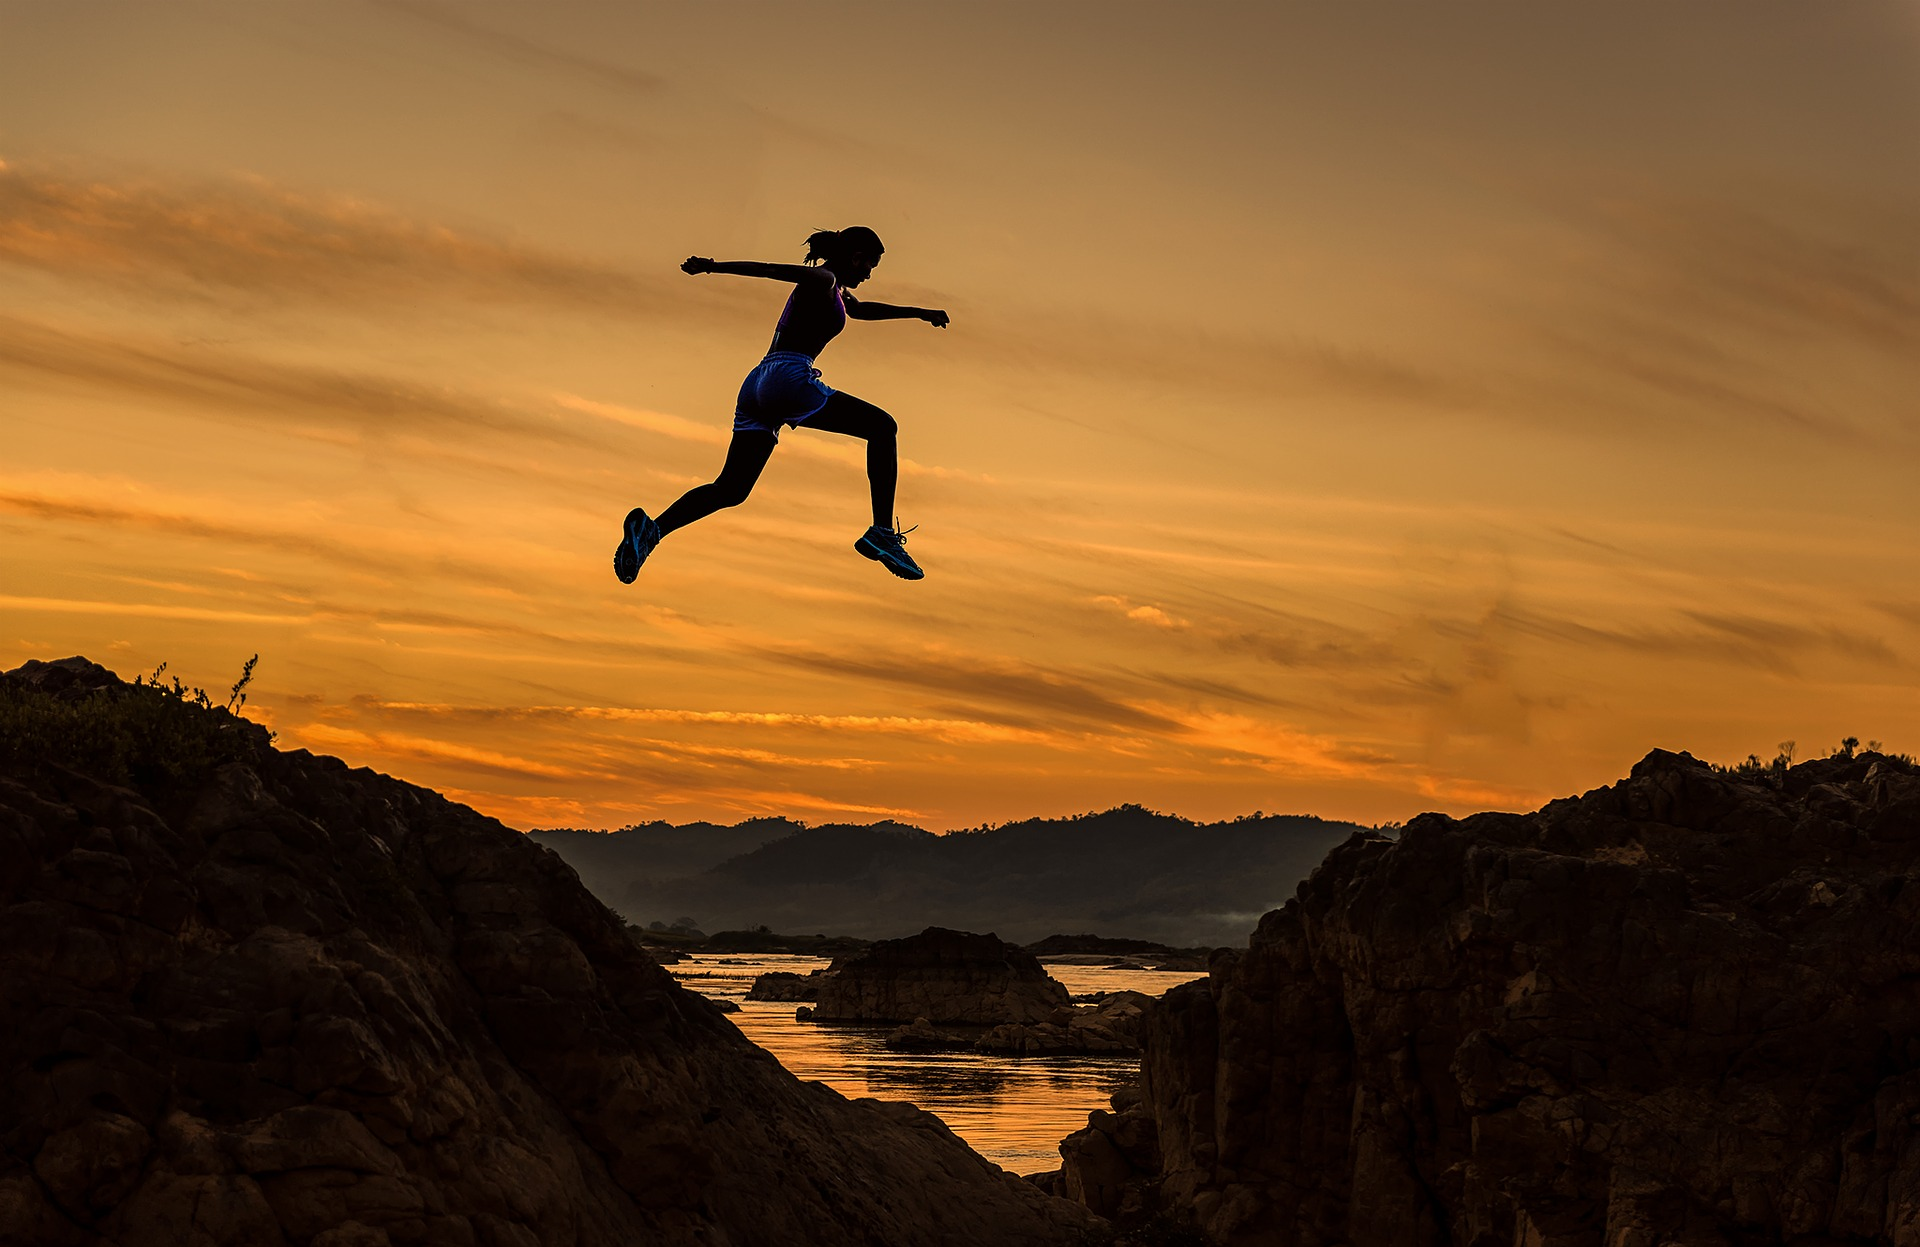 a woman jumping over hills - creating lifestyle goals